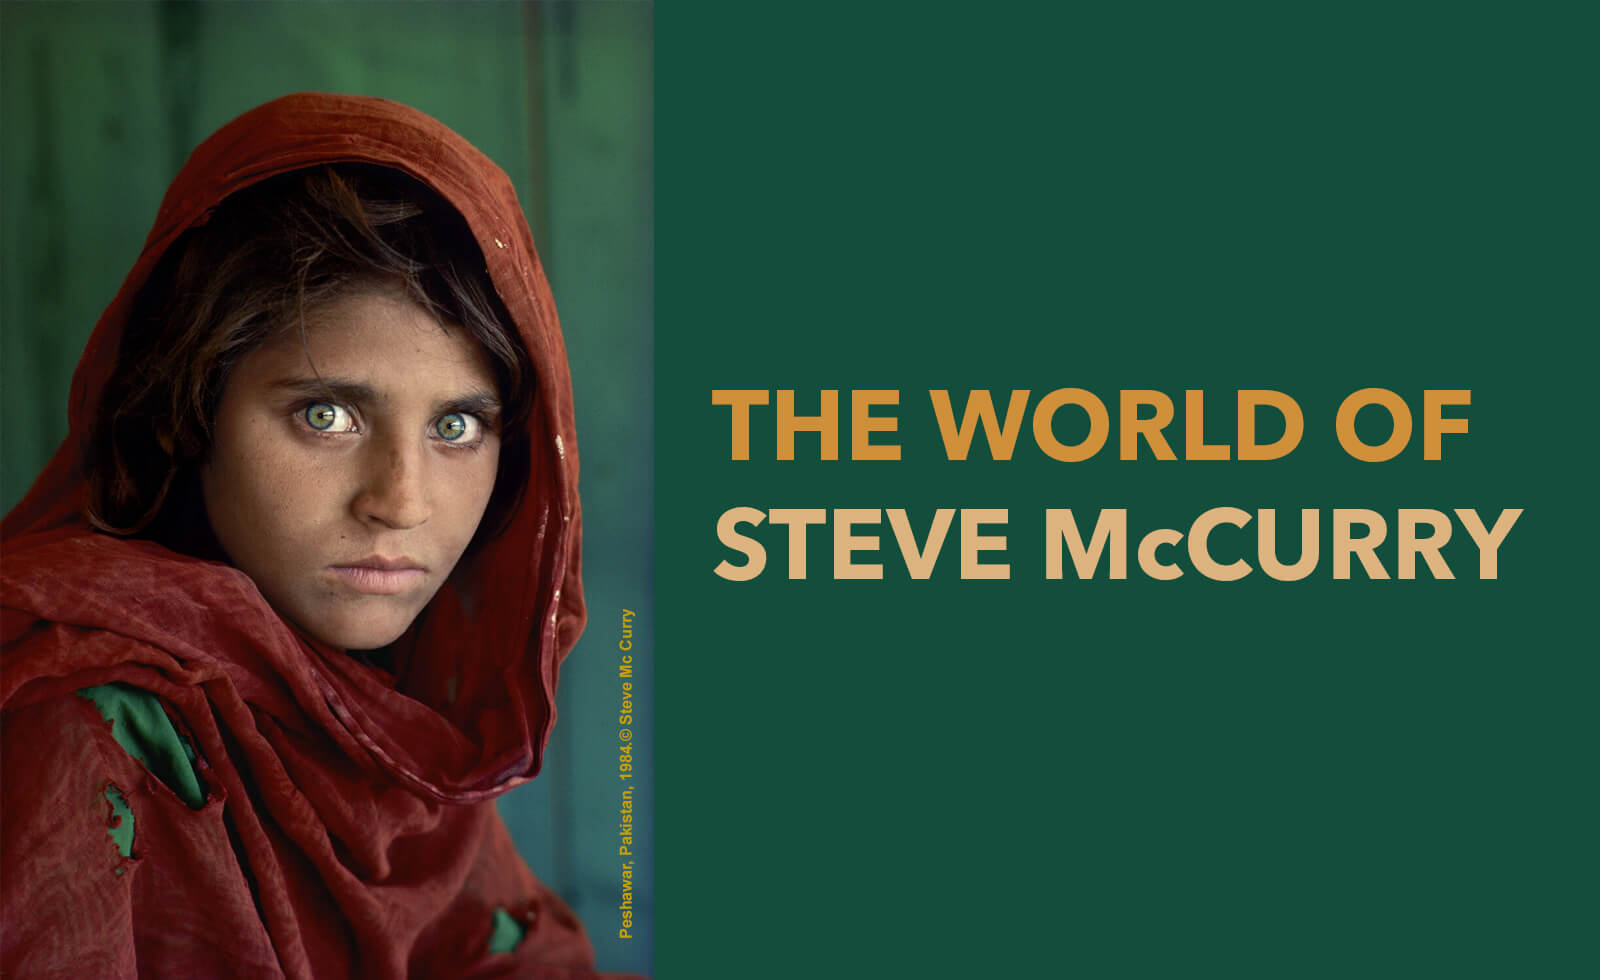 The World of Steve McCurry Photography Exhibit